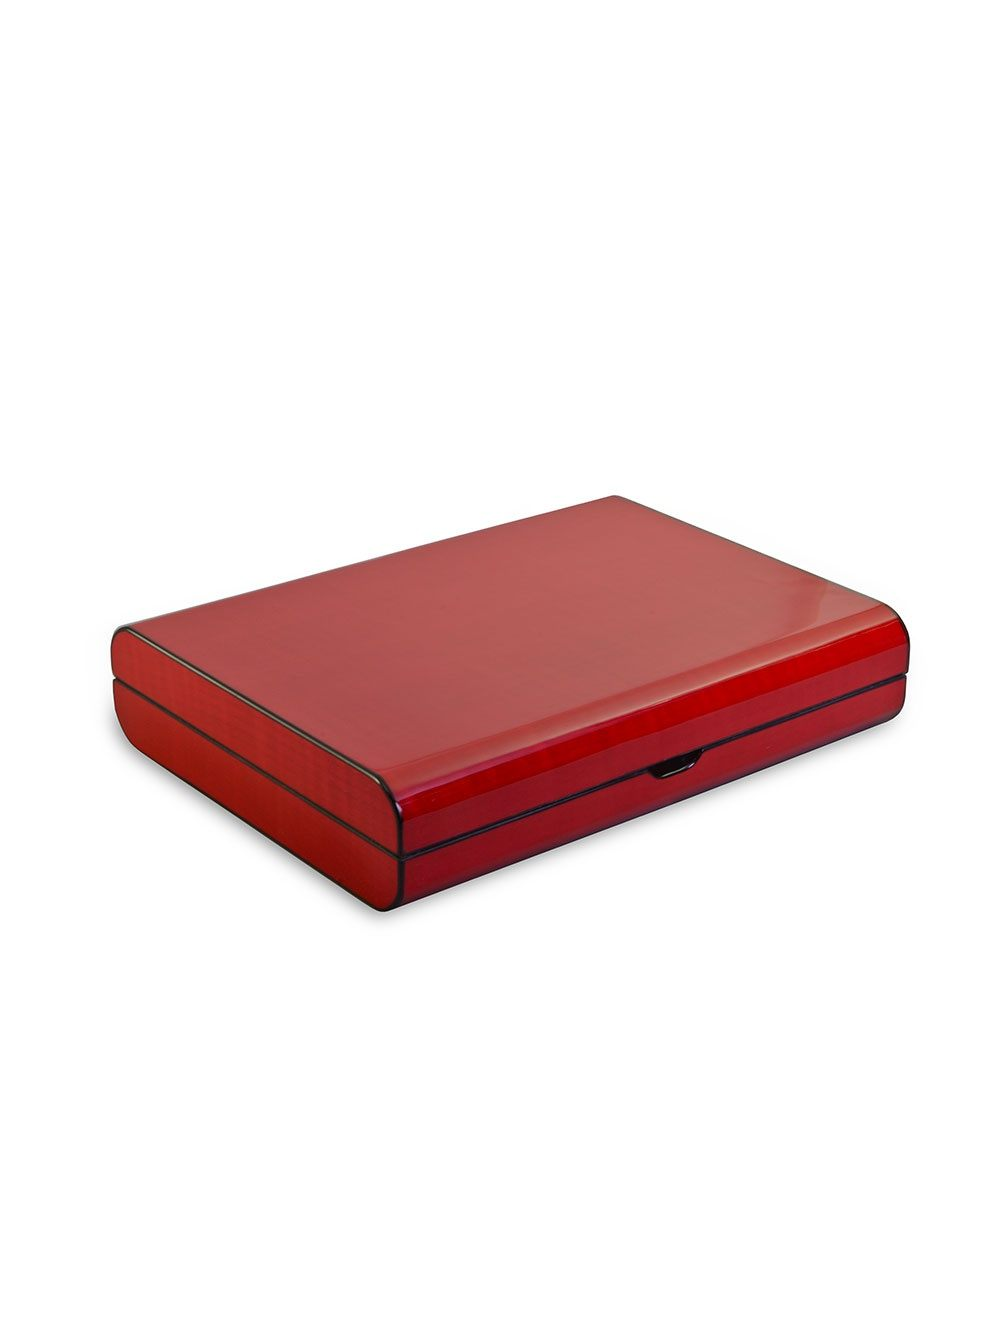 Cigar Wooden Box - Cherry Red